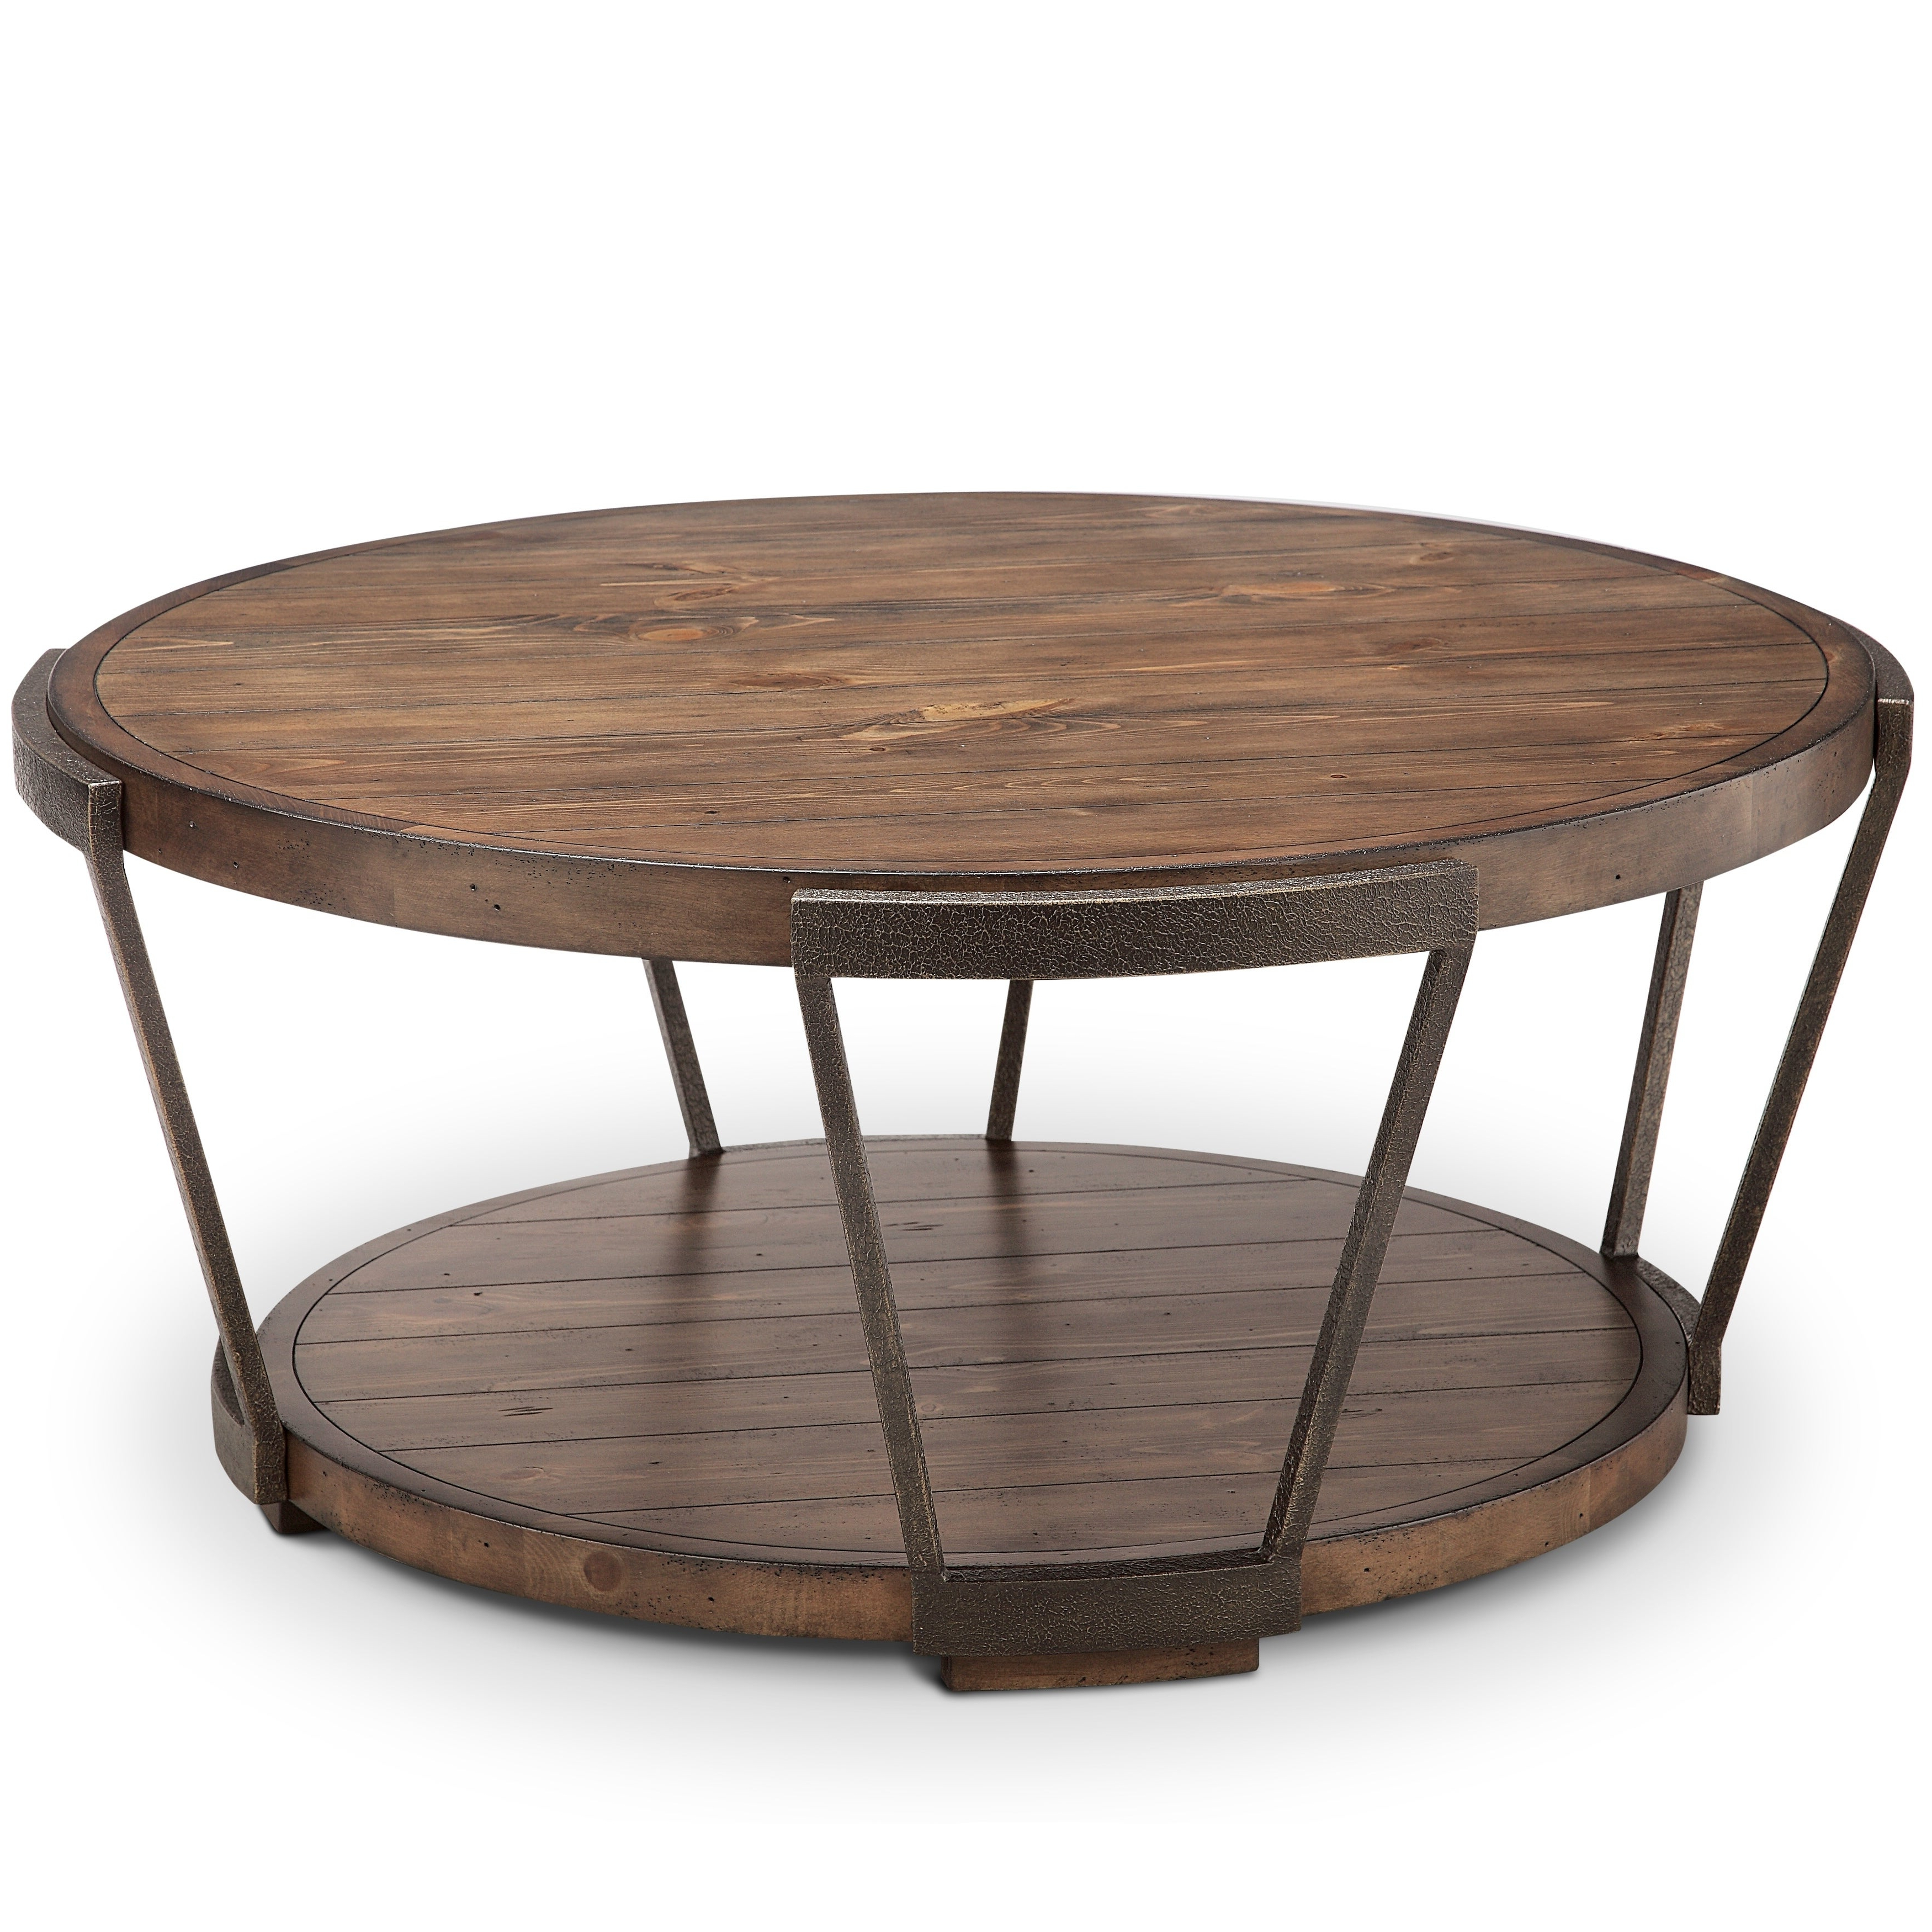 2019 Montgomery Industrial Reclaimed Wood Coffee Tables With Casters Throughout Yukon Industrial Bourbon And Aged Iron Round Coffee Table With Casters (Gallery 4 of 20)